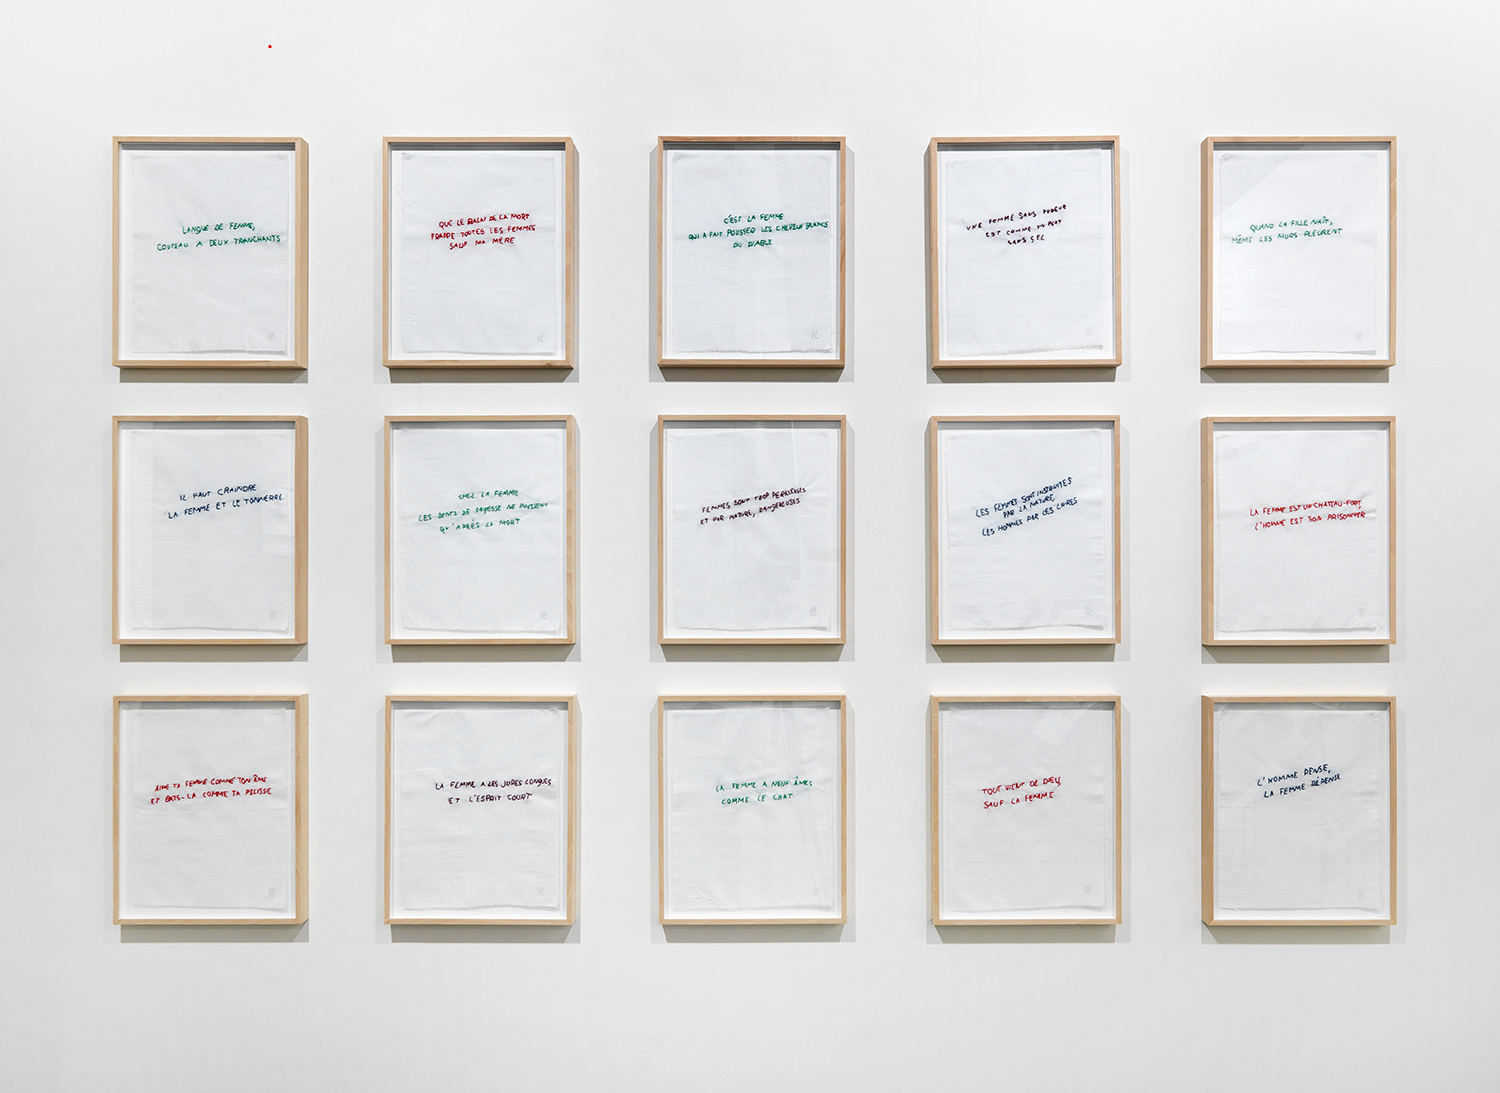 Annette Messager - Ma collection de proverbes, 1974/2012